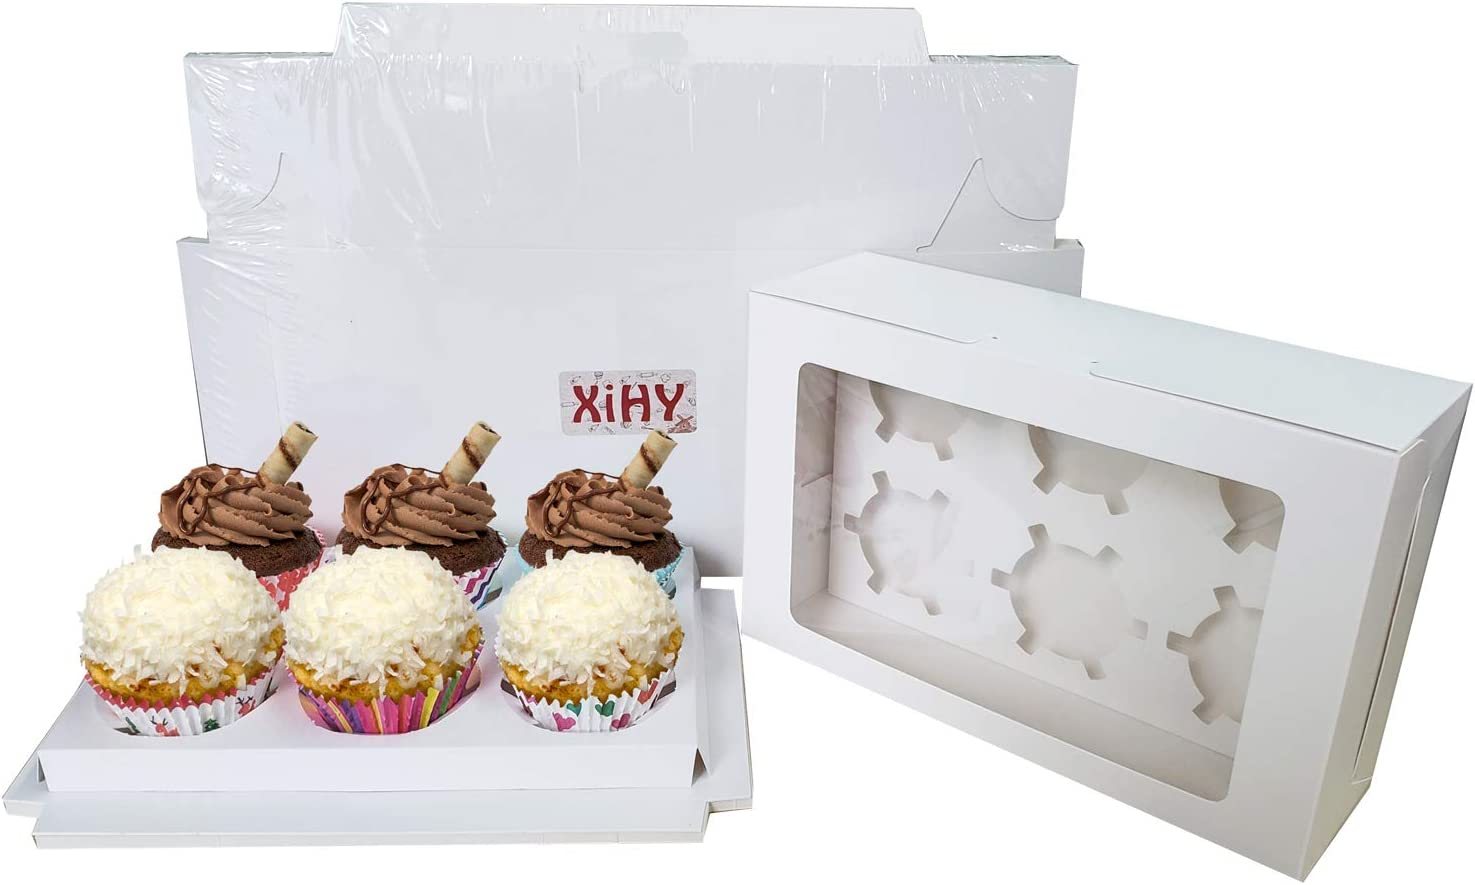 20-Set Cupcake Boxes Hold 6 Cupcakes,White Cupcake Containers Cake Boxes Carrier with Inserts and Window 9.3